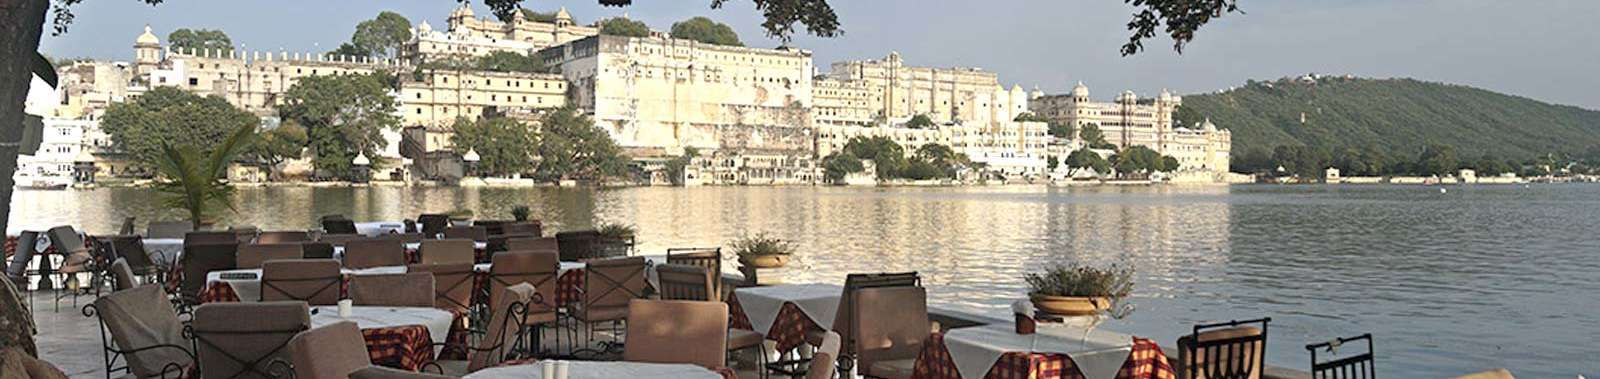 In Udaipur stay at Amet Haveli, a traditional hotel on the banks of Lake Pichola